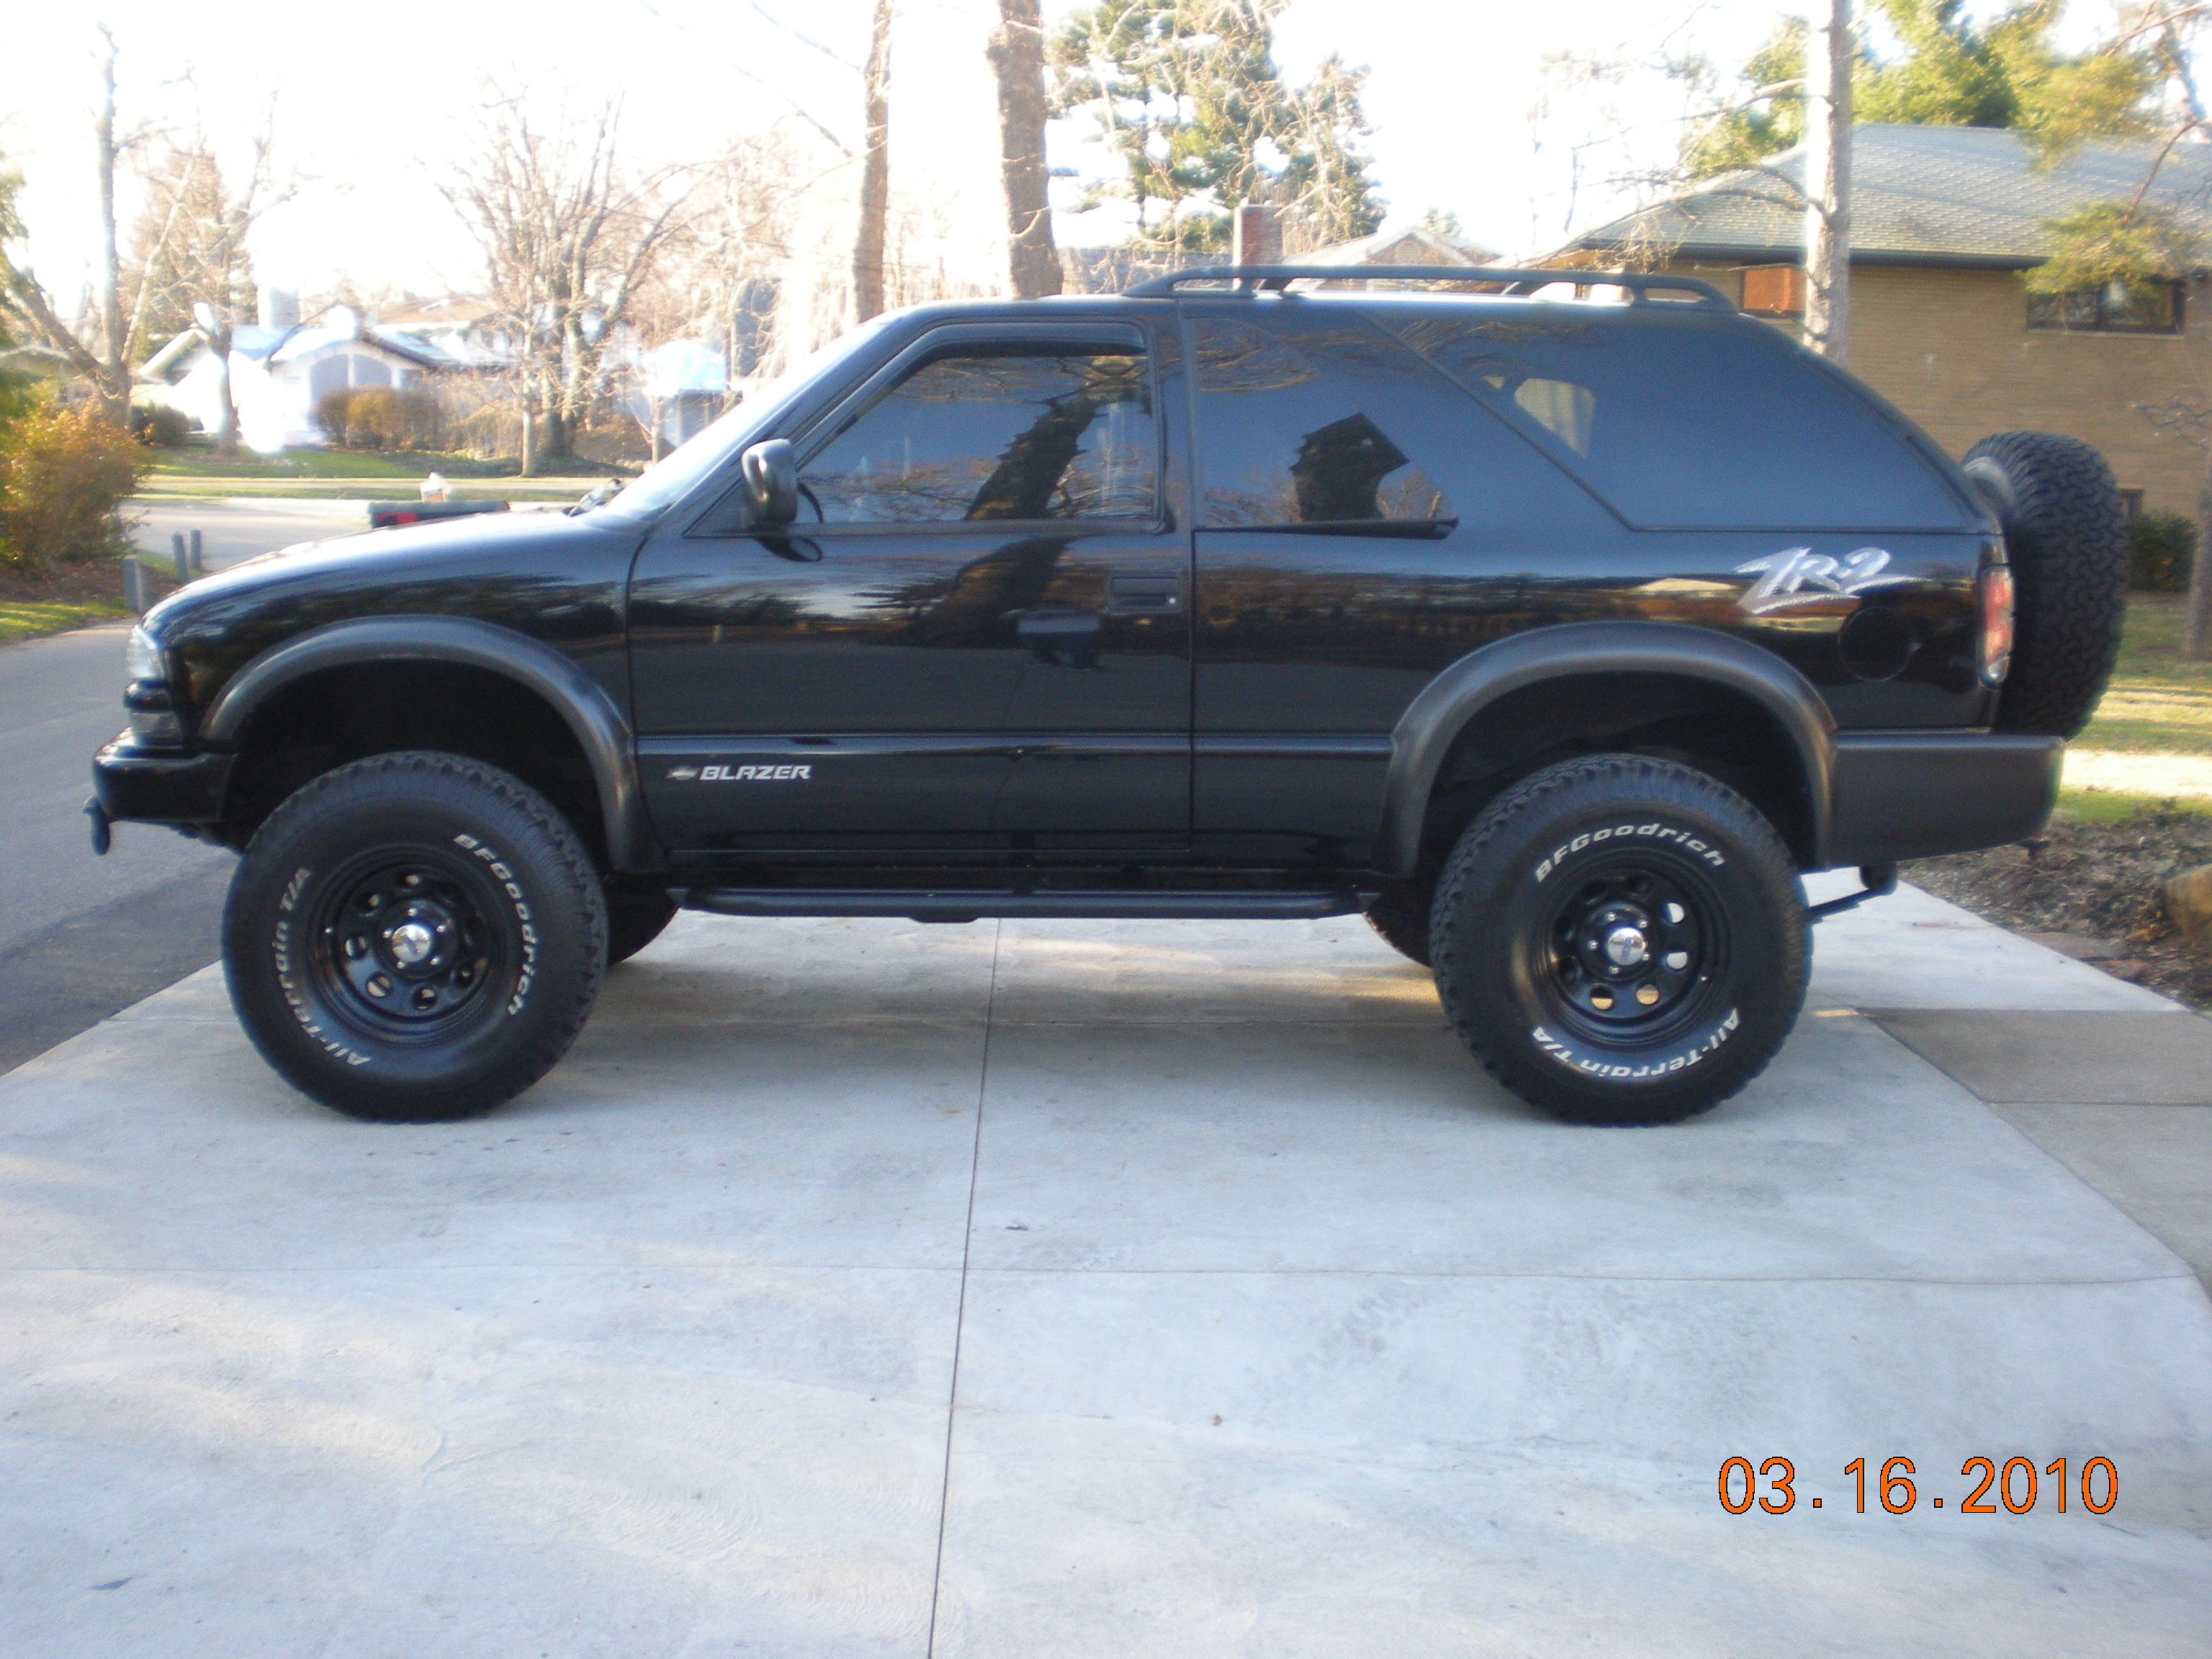 BlackBlaZr2 2002 Chevrolet S10 Blazer Specs, Photos ...